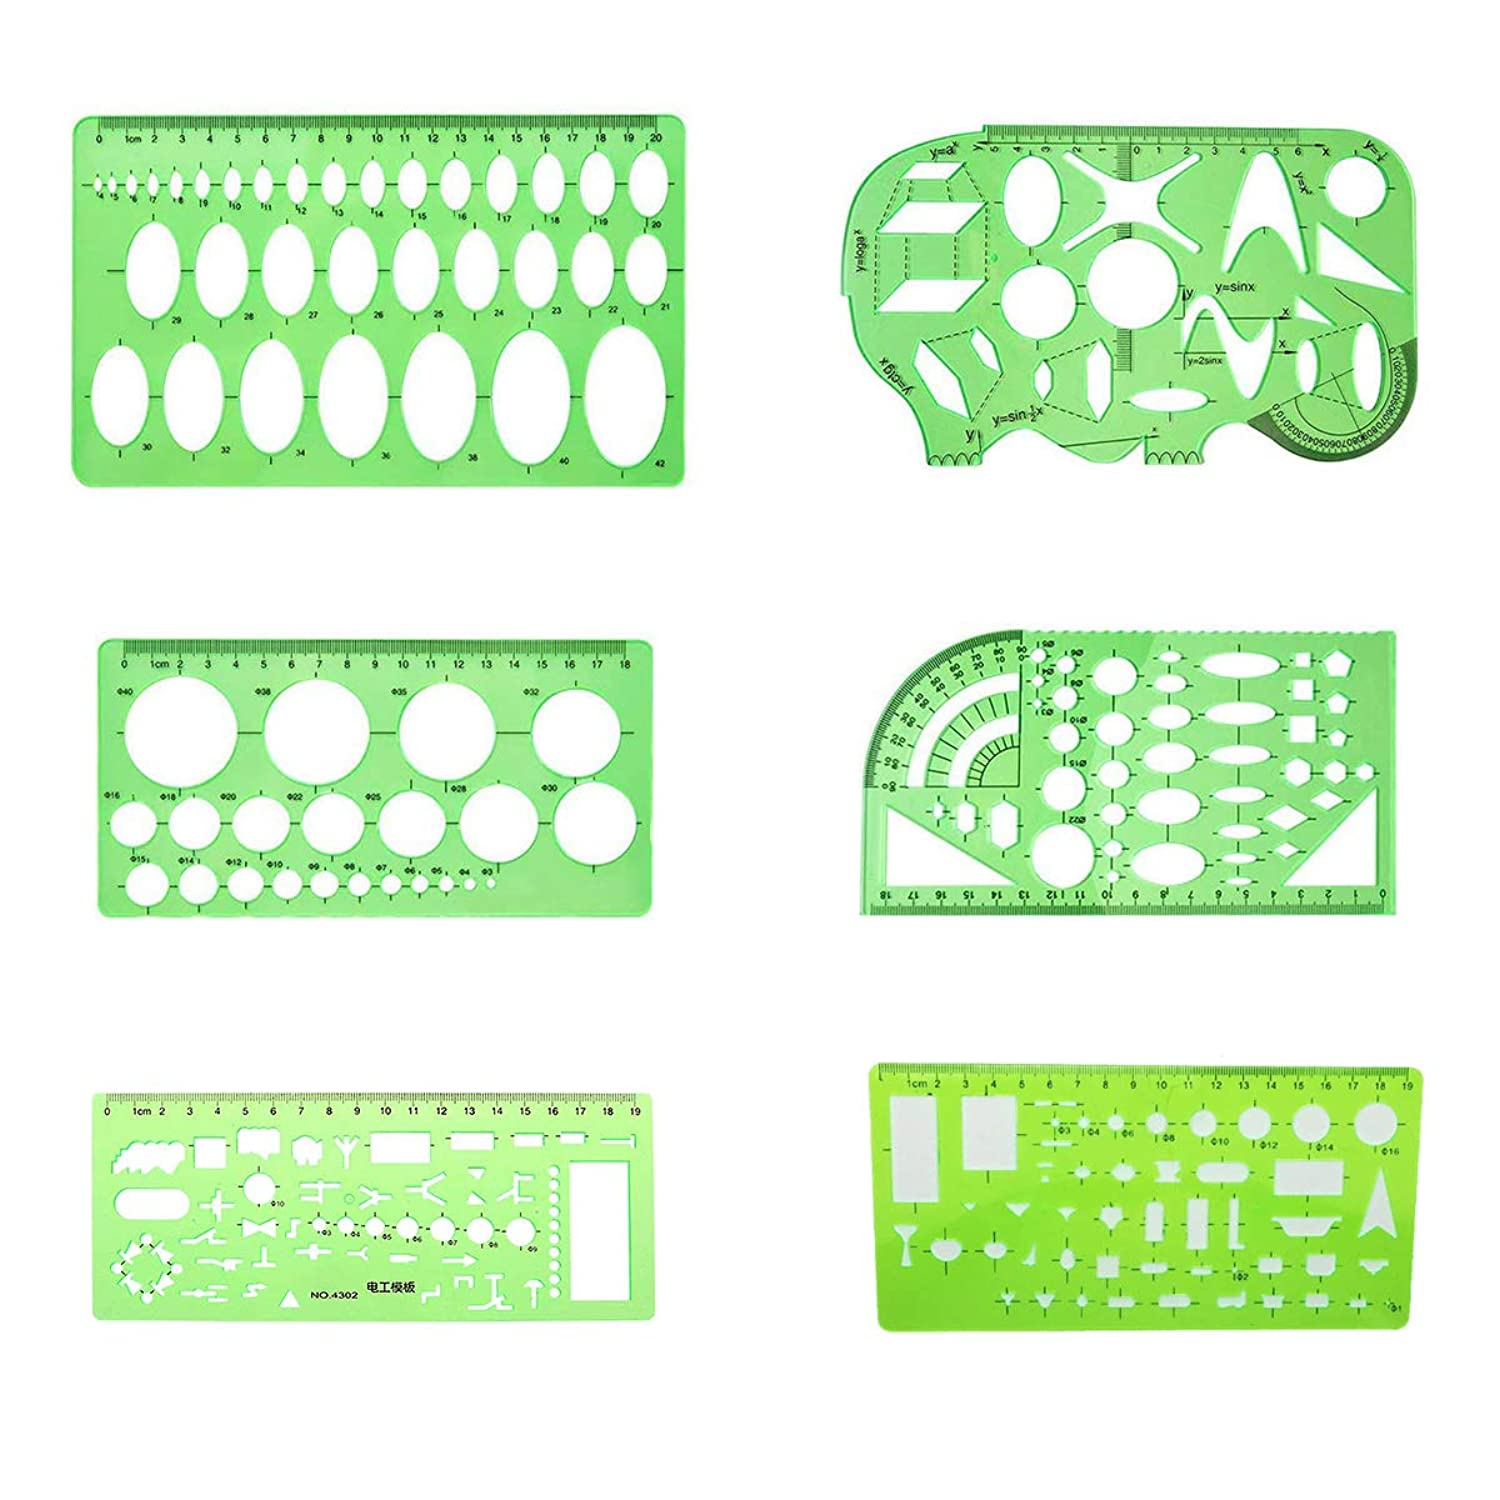 COMOK 6Pcs Drawing templates - Electrician Template, Circle Template,Oval Template,Geometric Template, Drawing Template for All Purpose, Technical Drawing Template, Clear Green Plastic Rulers